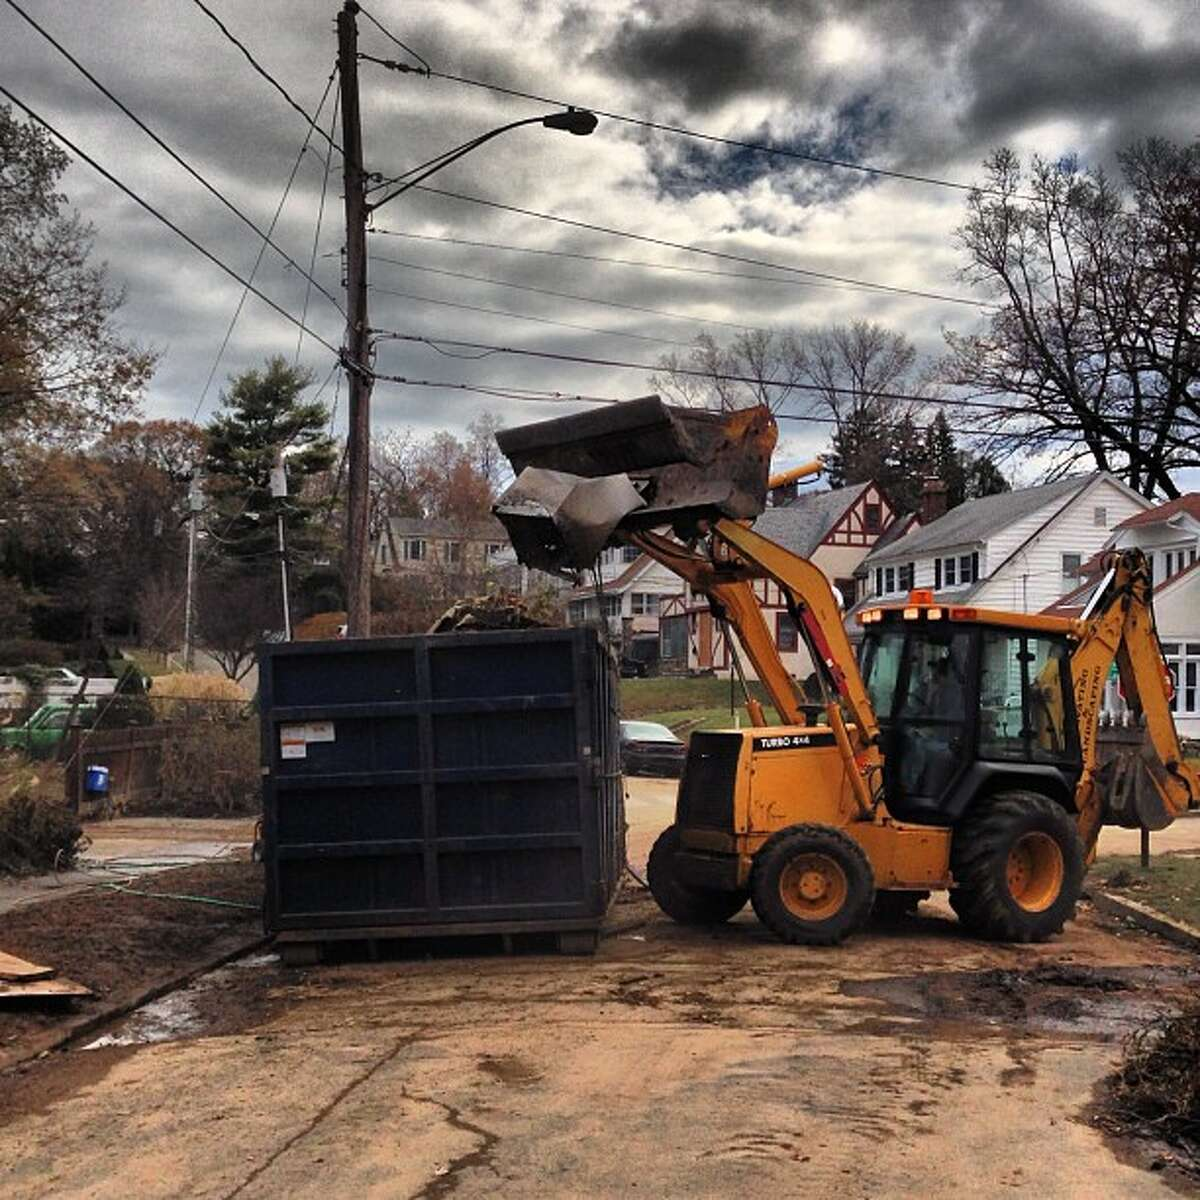 Clean-up continues Saturday. There goes an oven. What a mess. (Photo by Kara Billhardt)